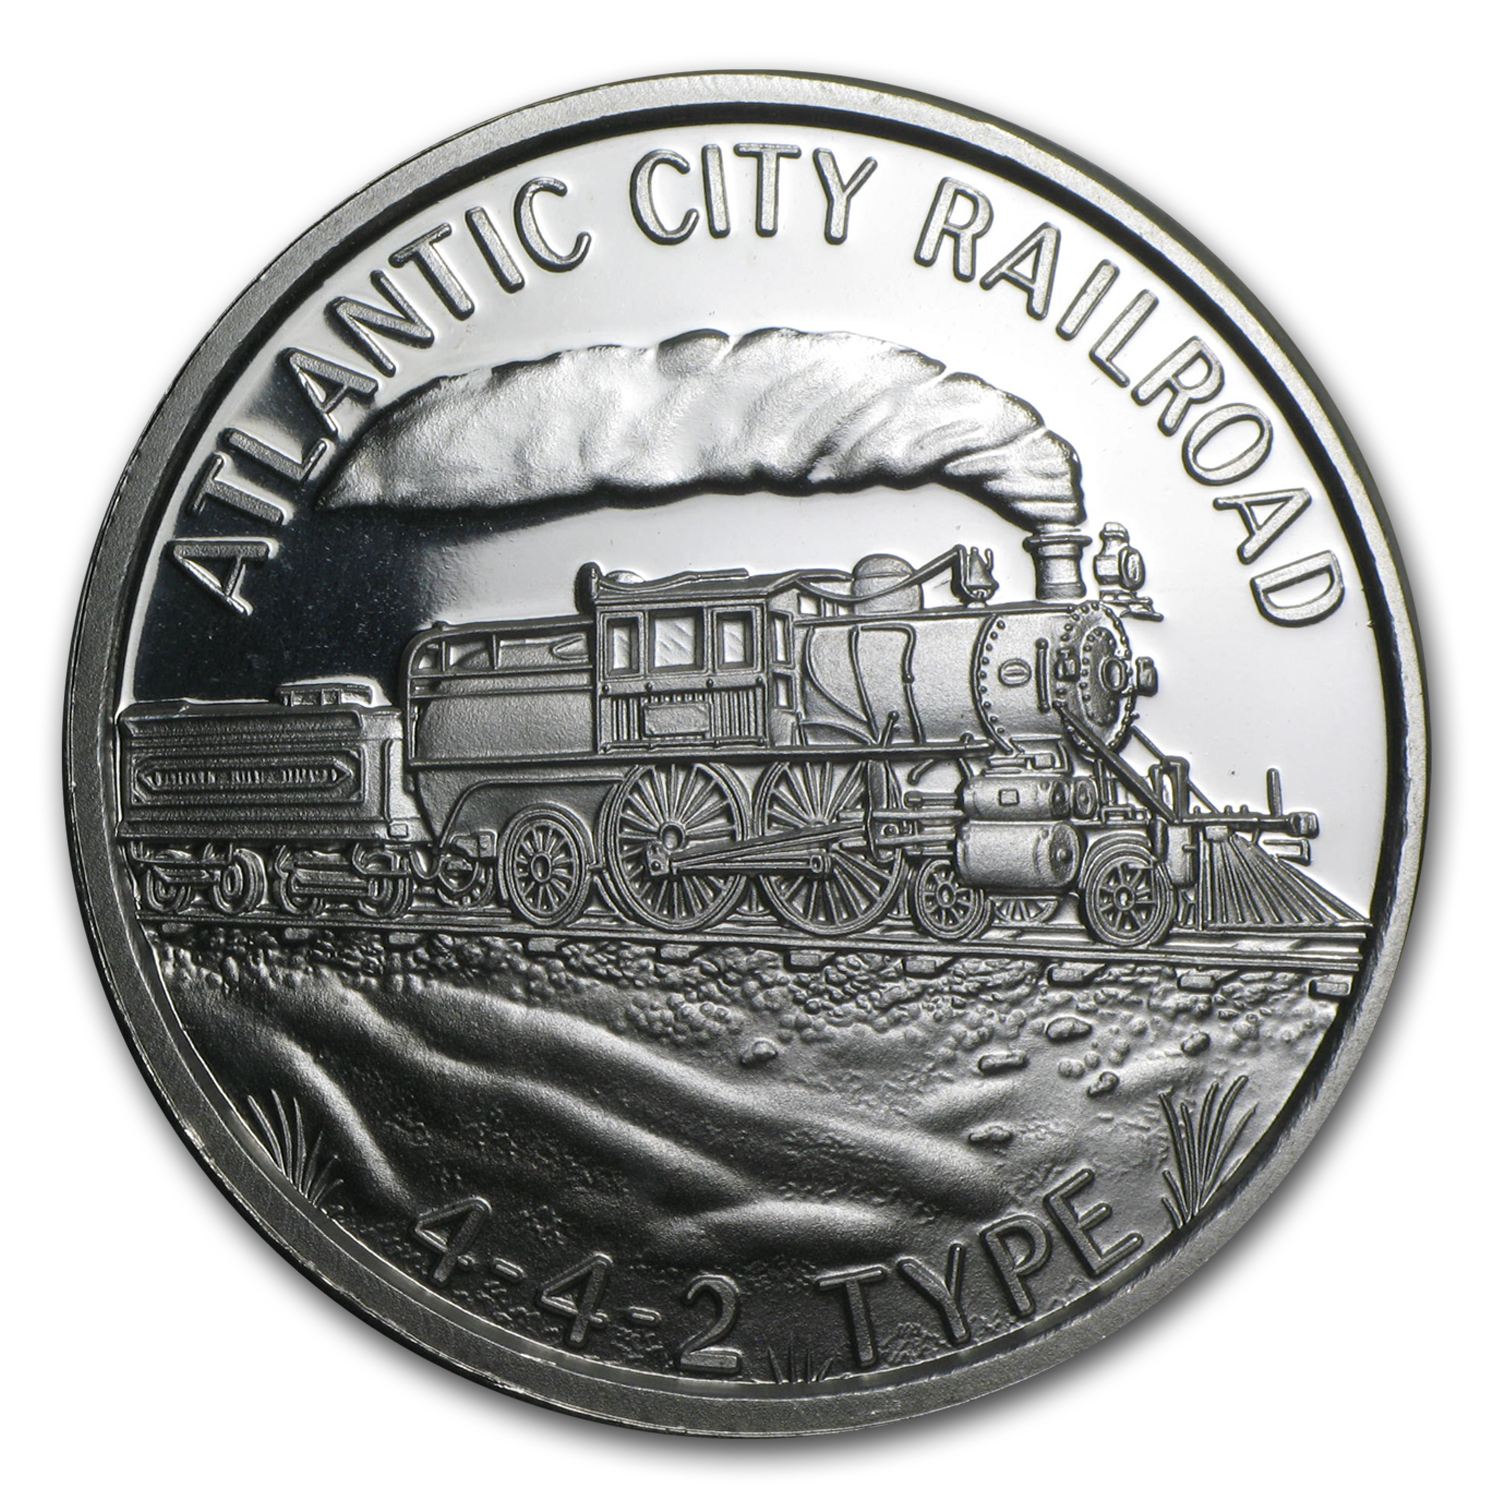 1 oz Silver Round - Train (Atlantic City Railroad 442)